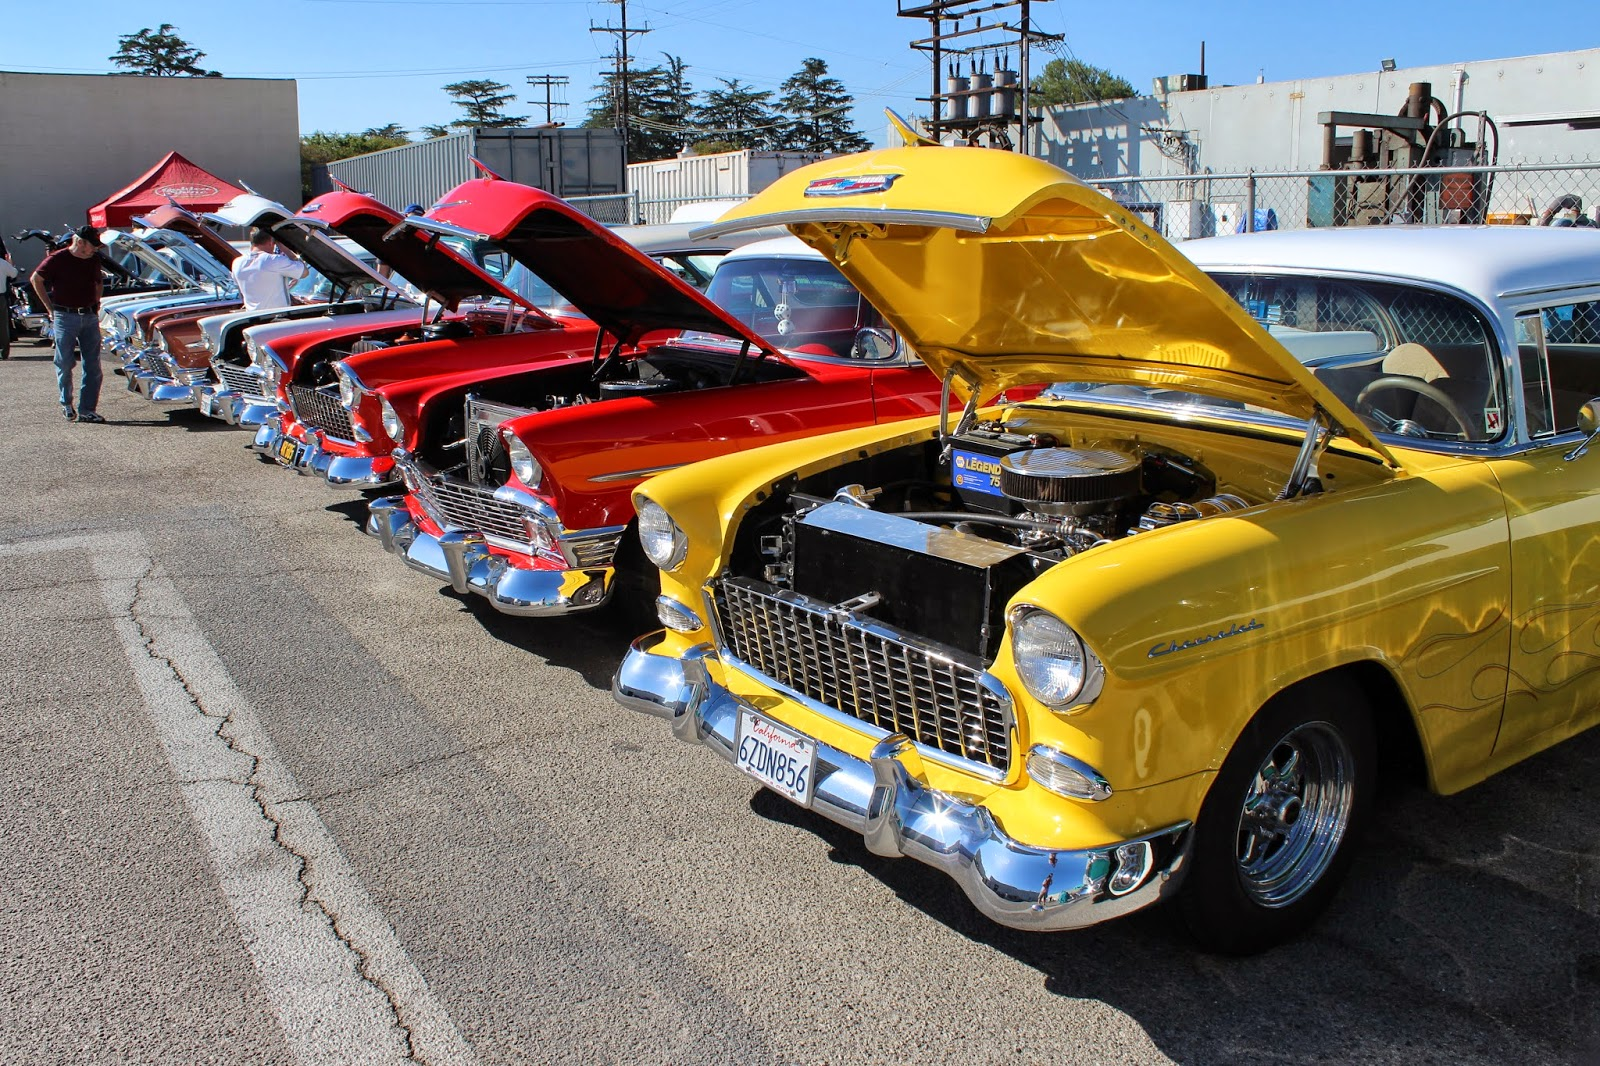 Covering Classic Cars Classic Chevy Car Show At California Car Cover - Classic car show california